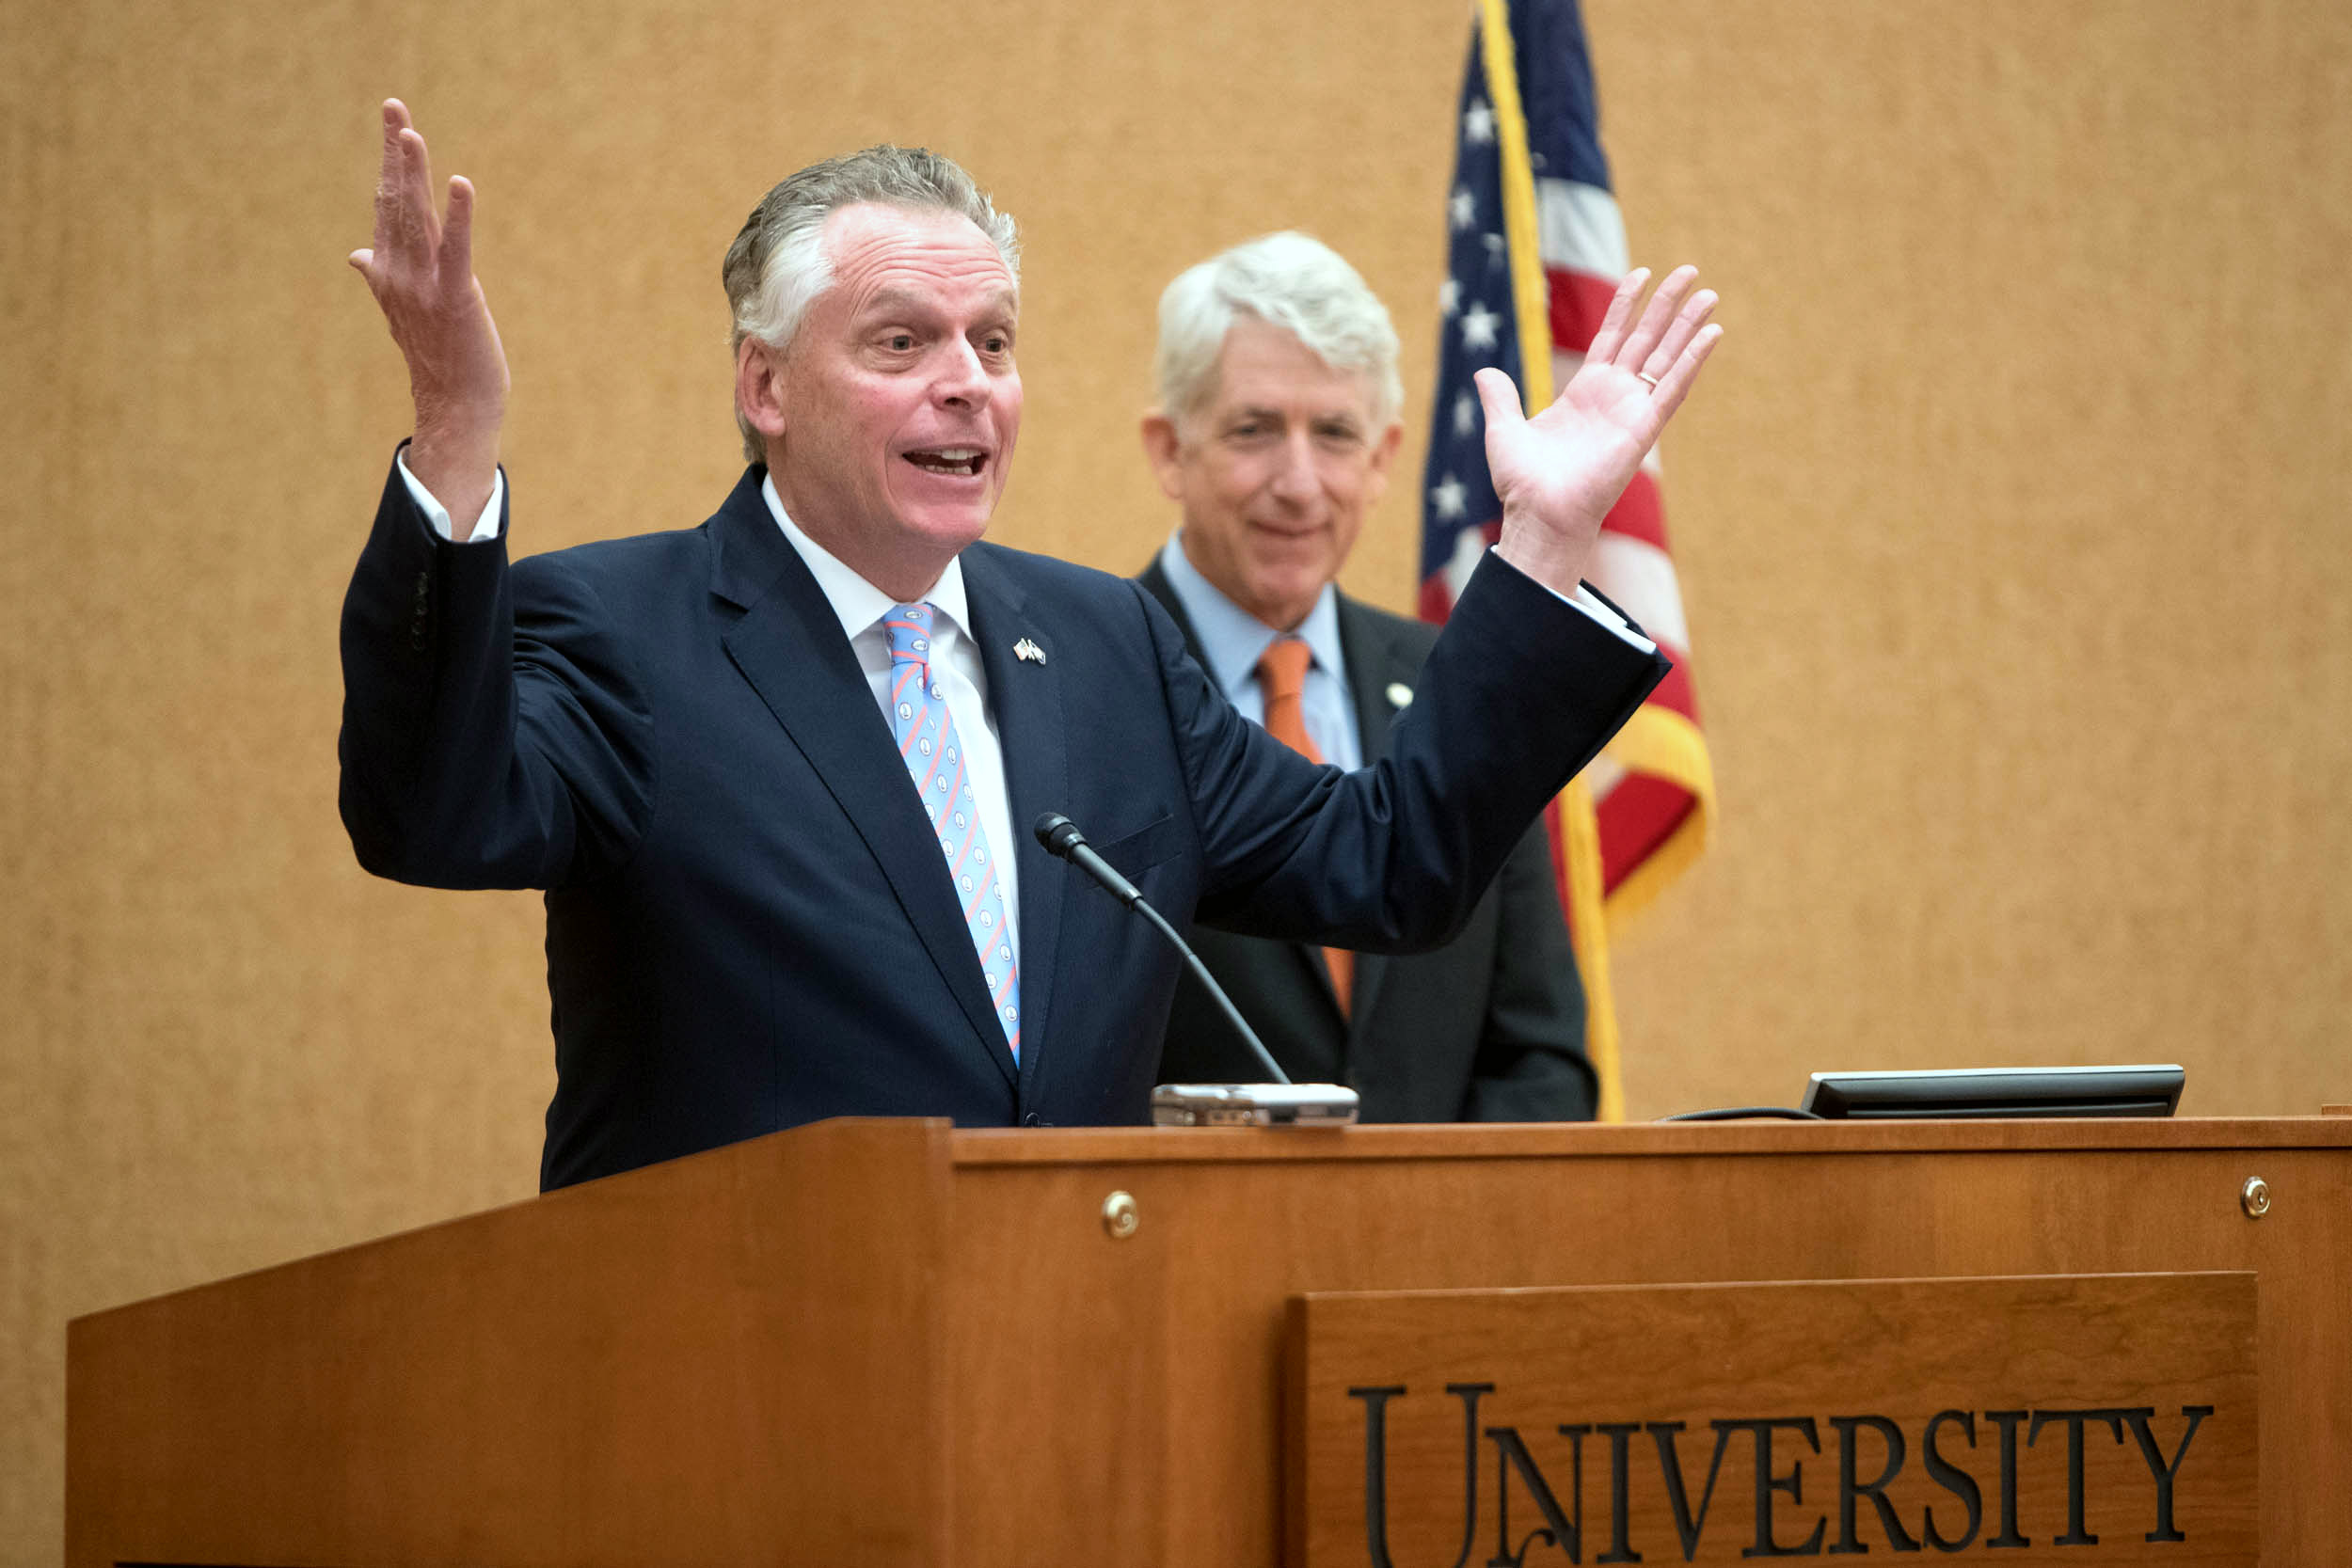 McAuliffe said extending protections to the LGBT population makes sense for civil rights and for business.